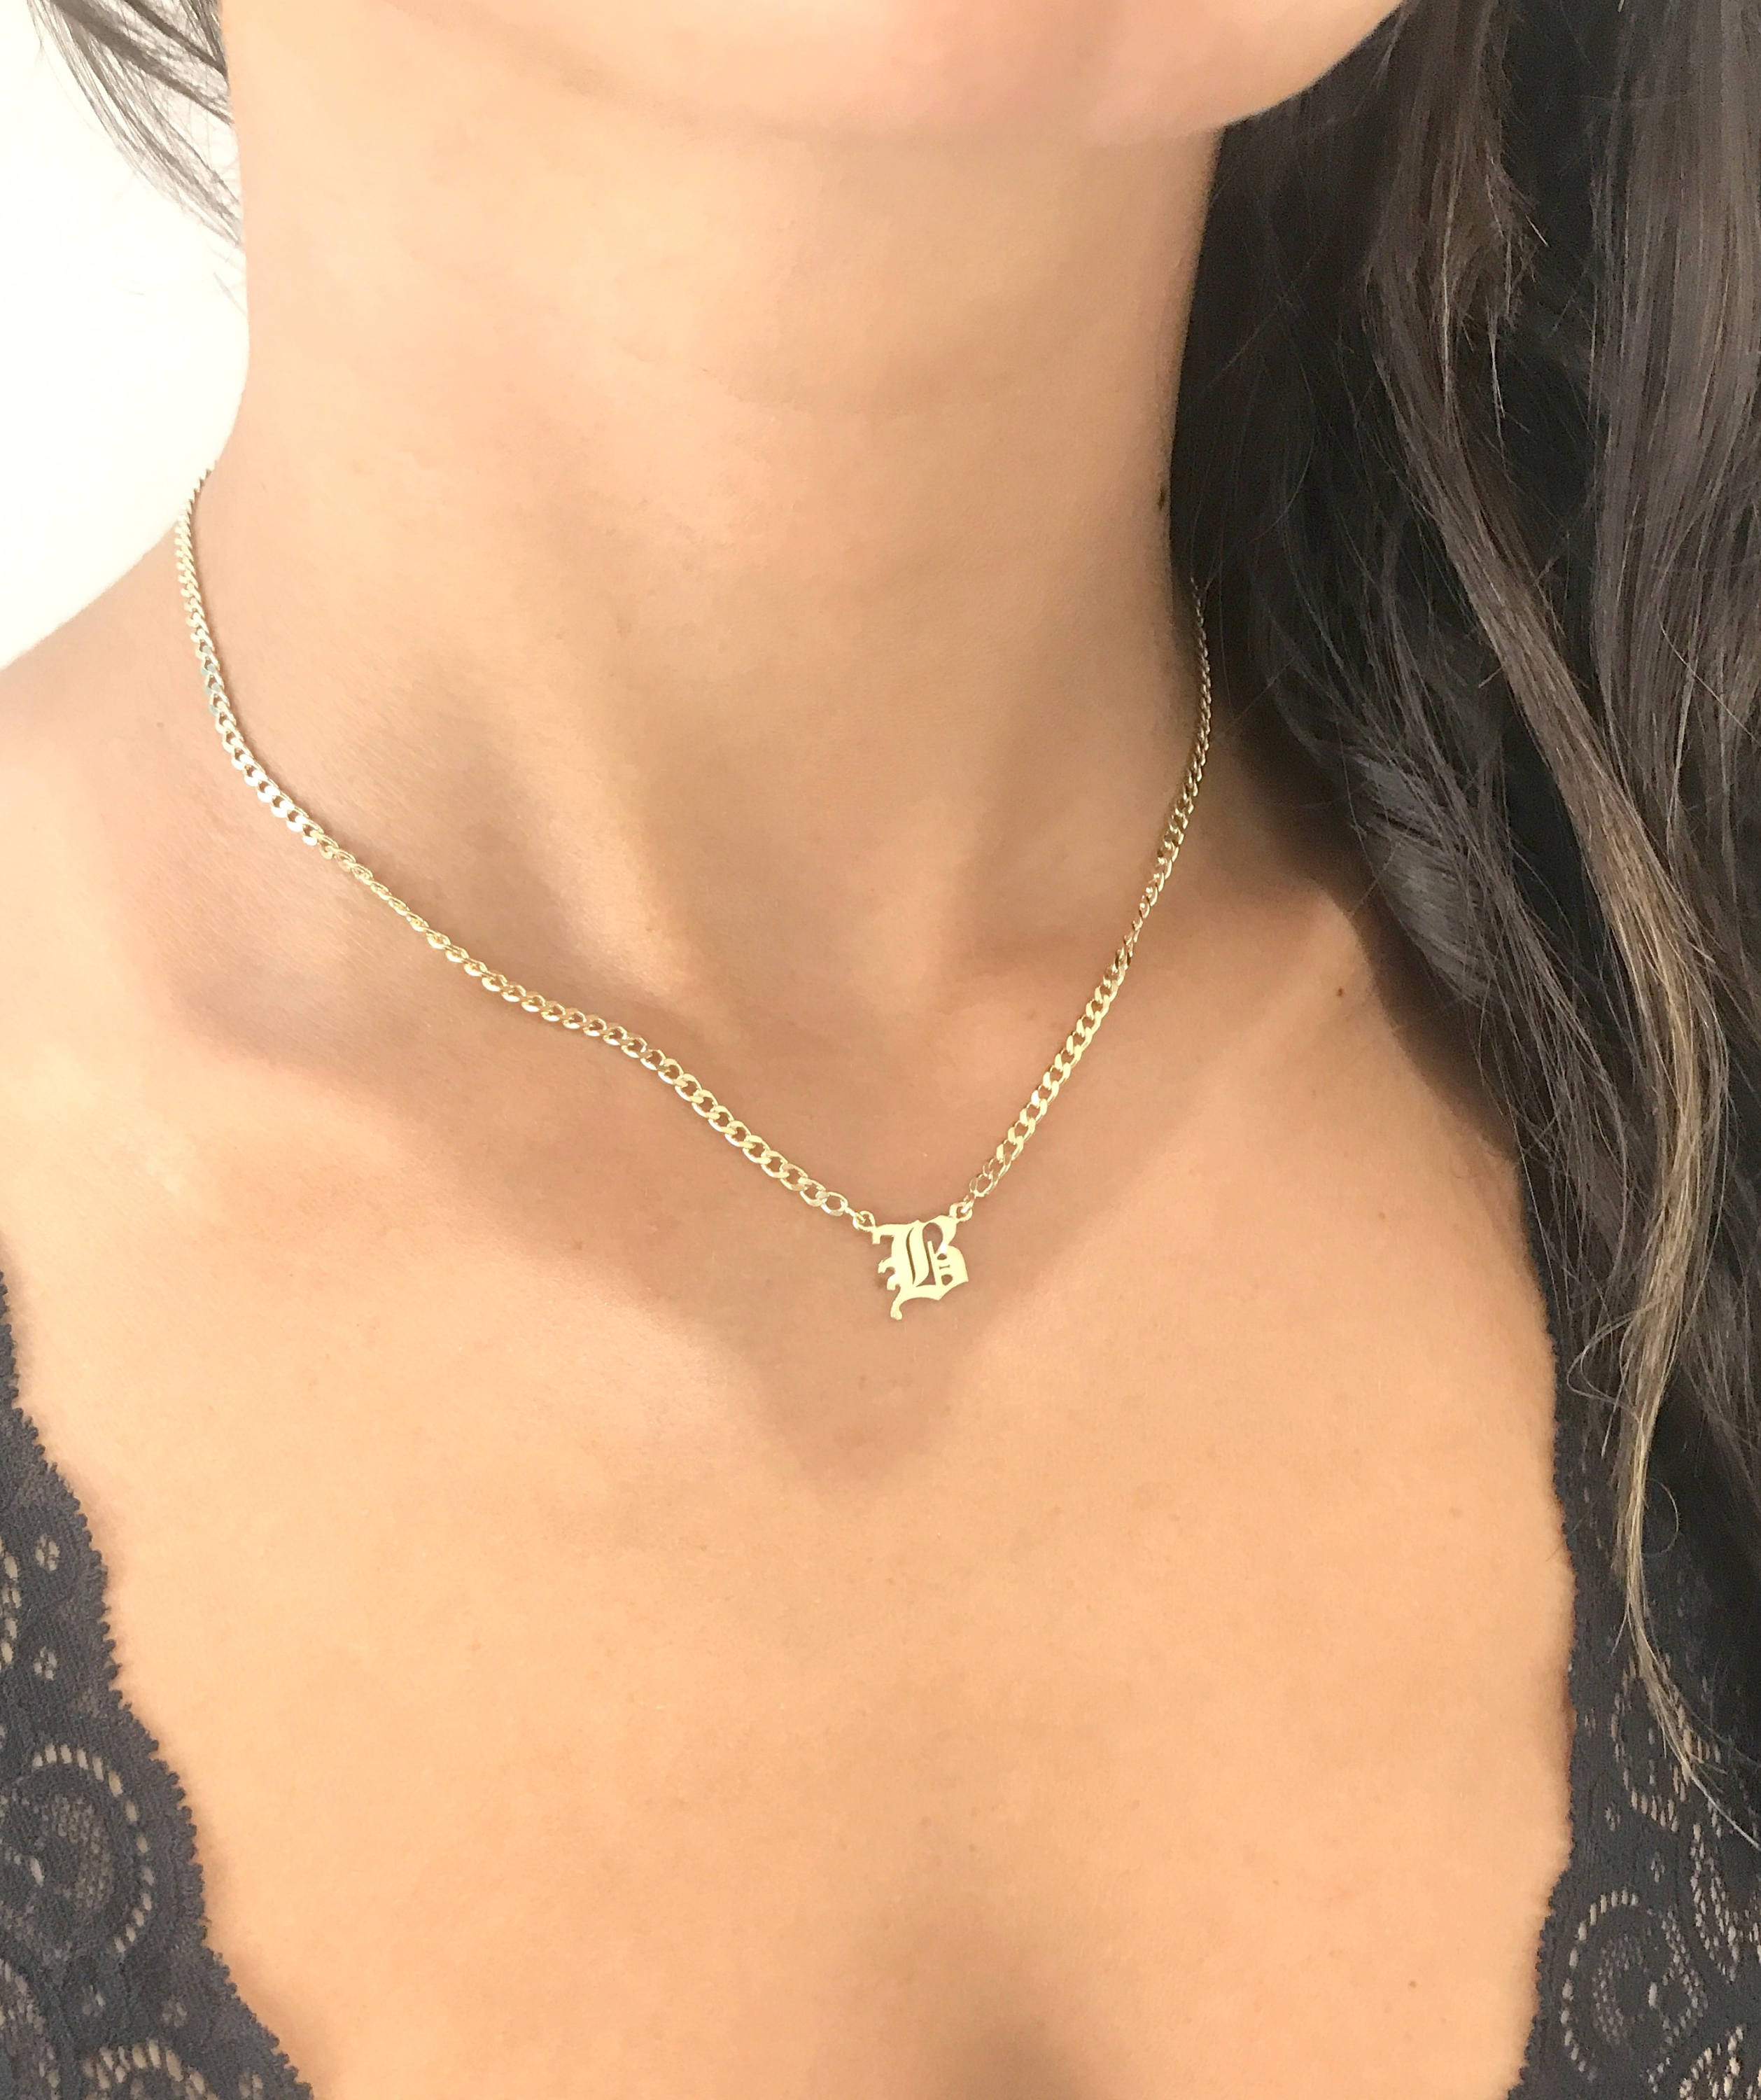 Old English Initial Necklace – Dainty Initial Necklace – Curb Chain  Necklace – Personalized Necklace – Gothic Initial Necklace – Mother Gift In 2019 Curb Chain Necklaces (View 17 of 25)